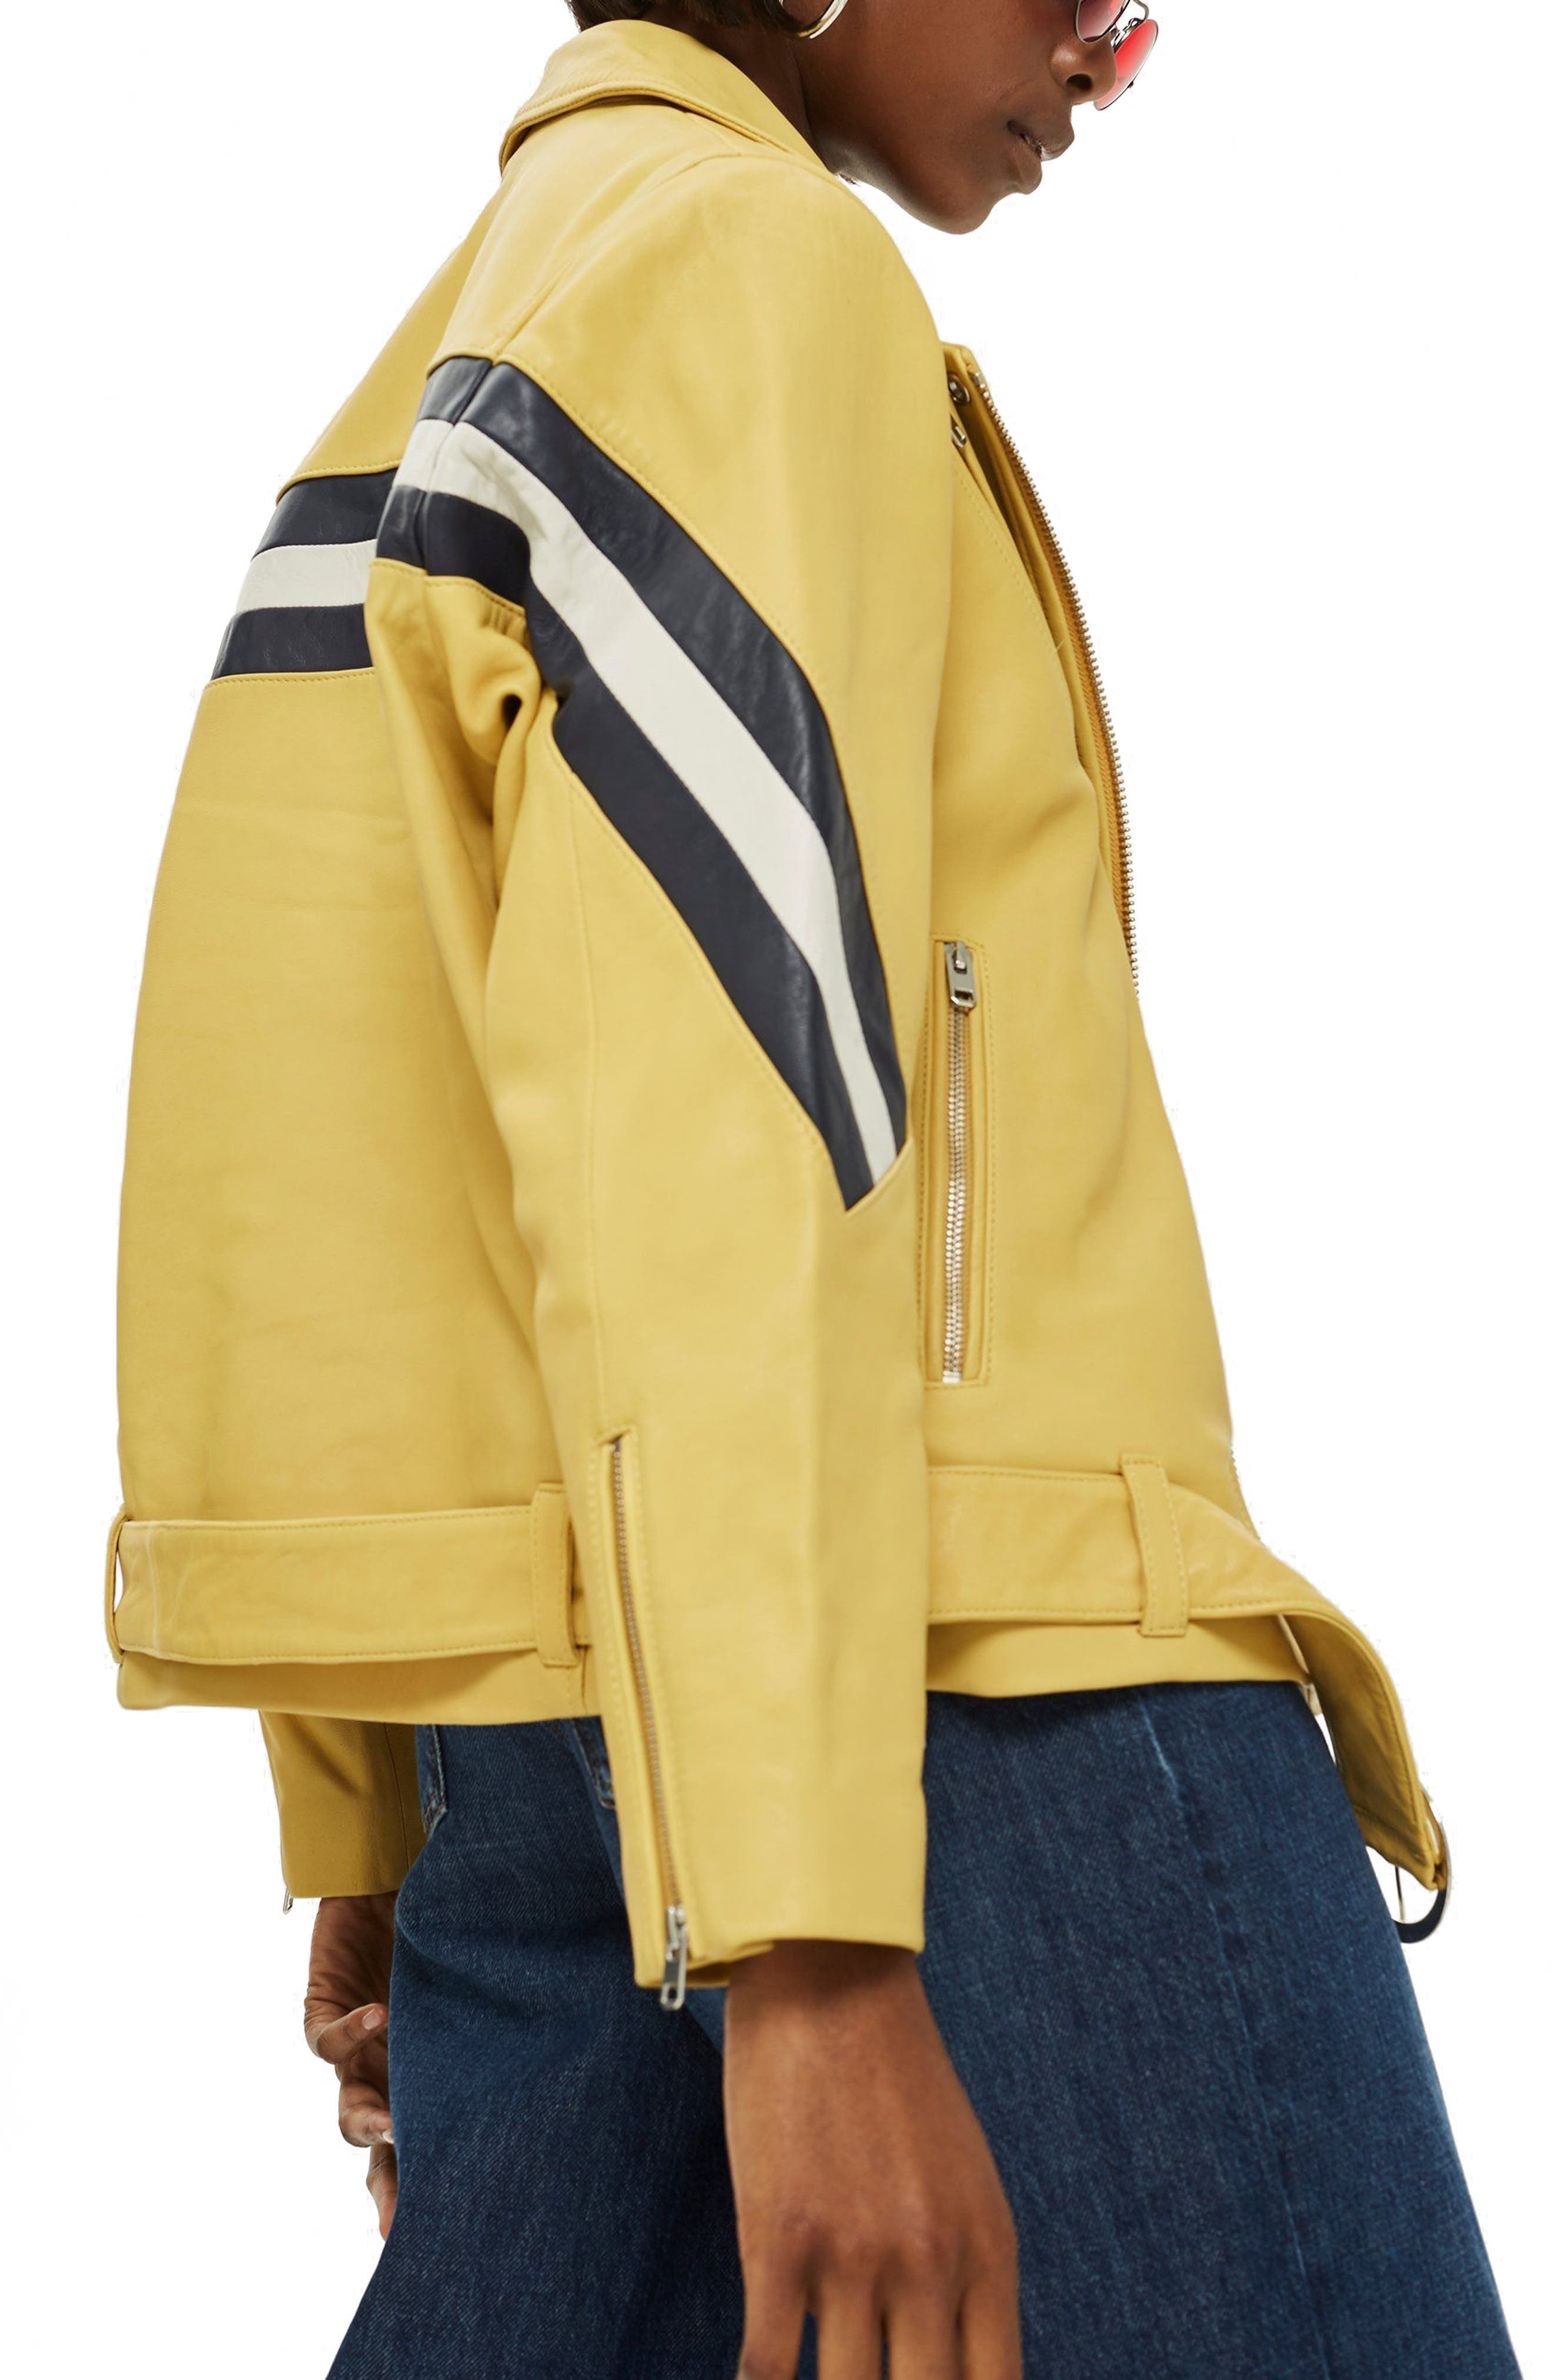 Strobe Leather Jacket,                             Alternate thumbnail 3, color,                             Yellow Multi